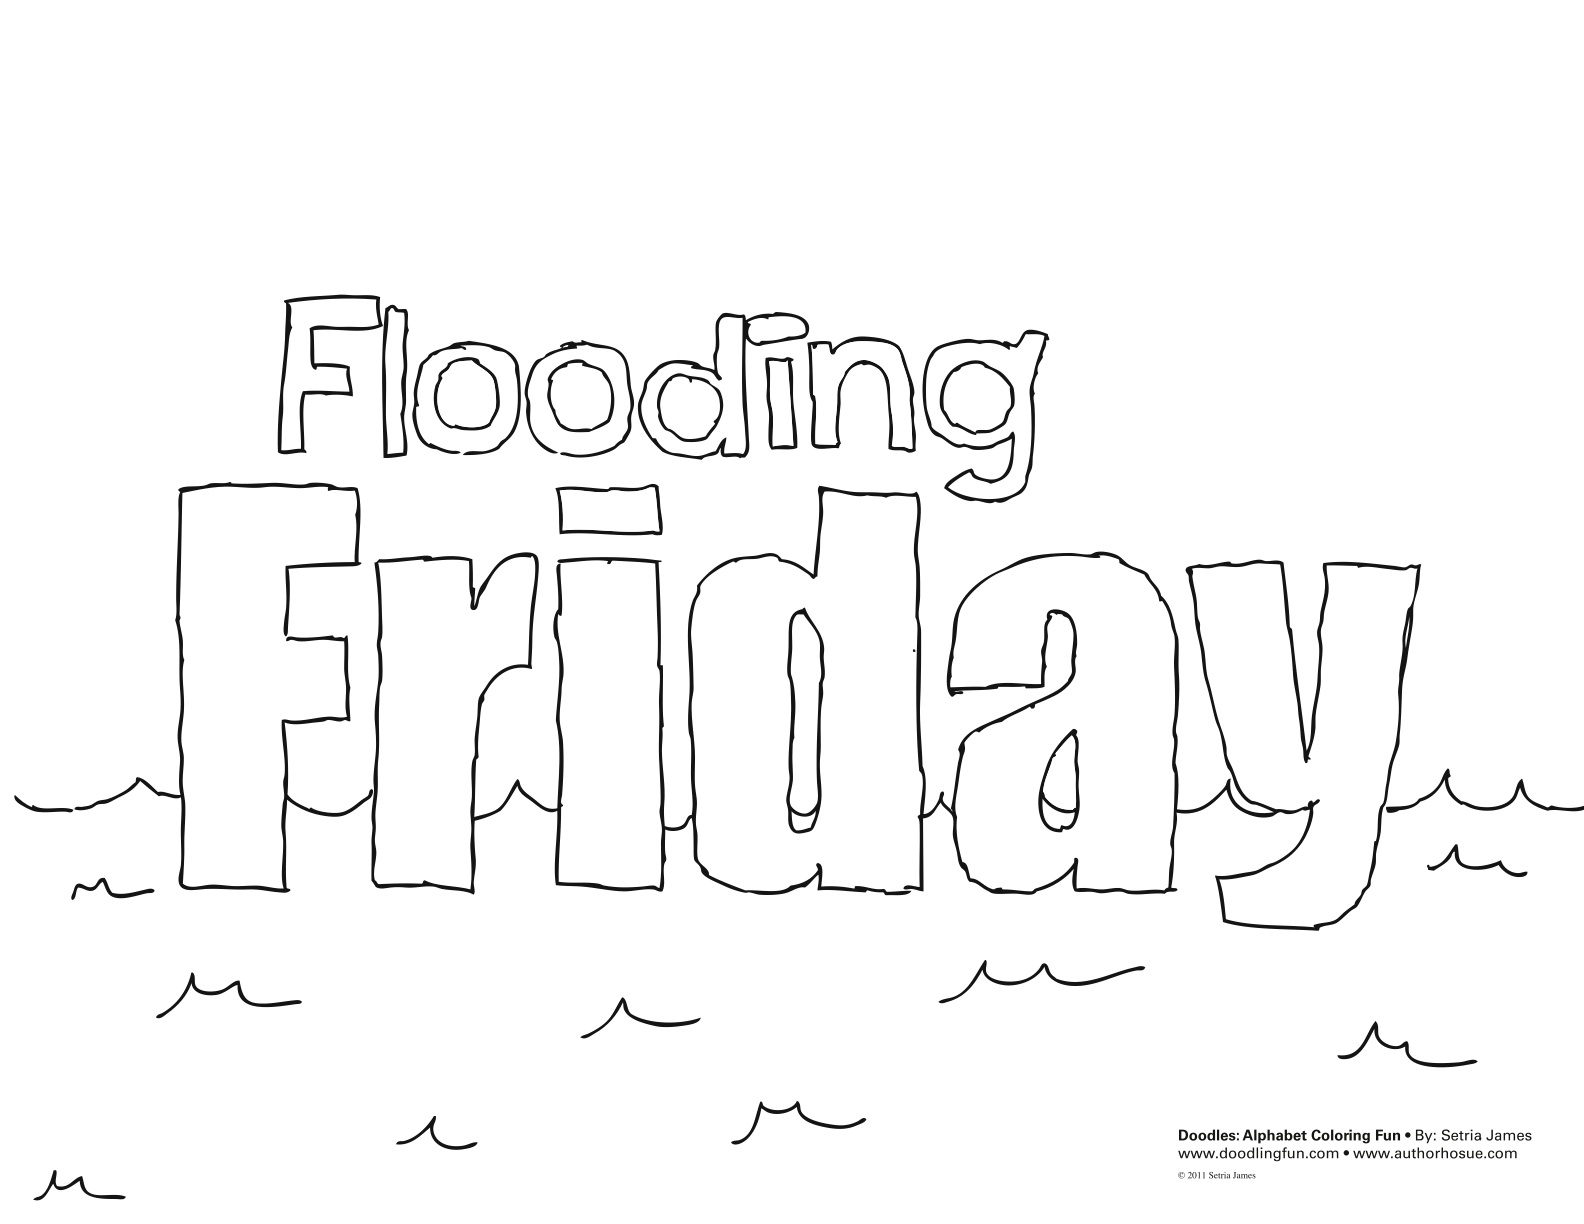 Days Of The Week Coloring Sheets Doodles Ave Days Of The Week Coloring Pages